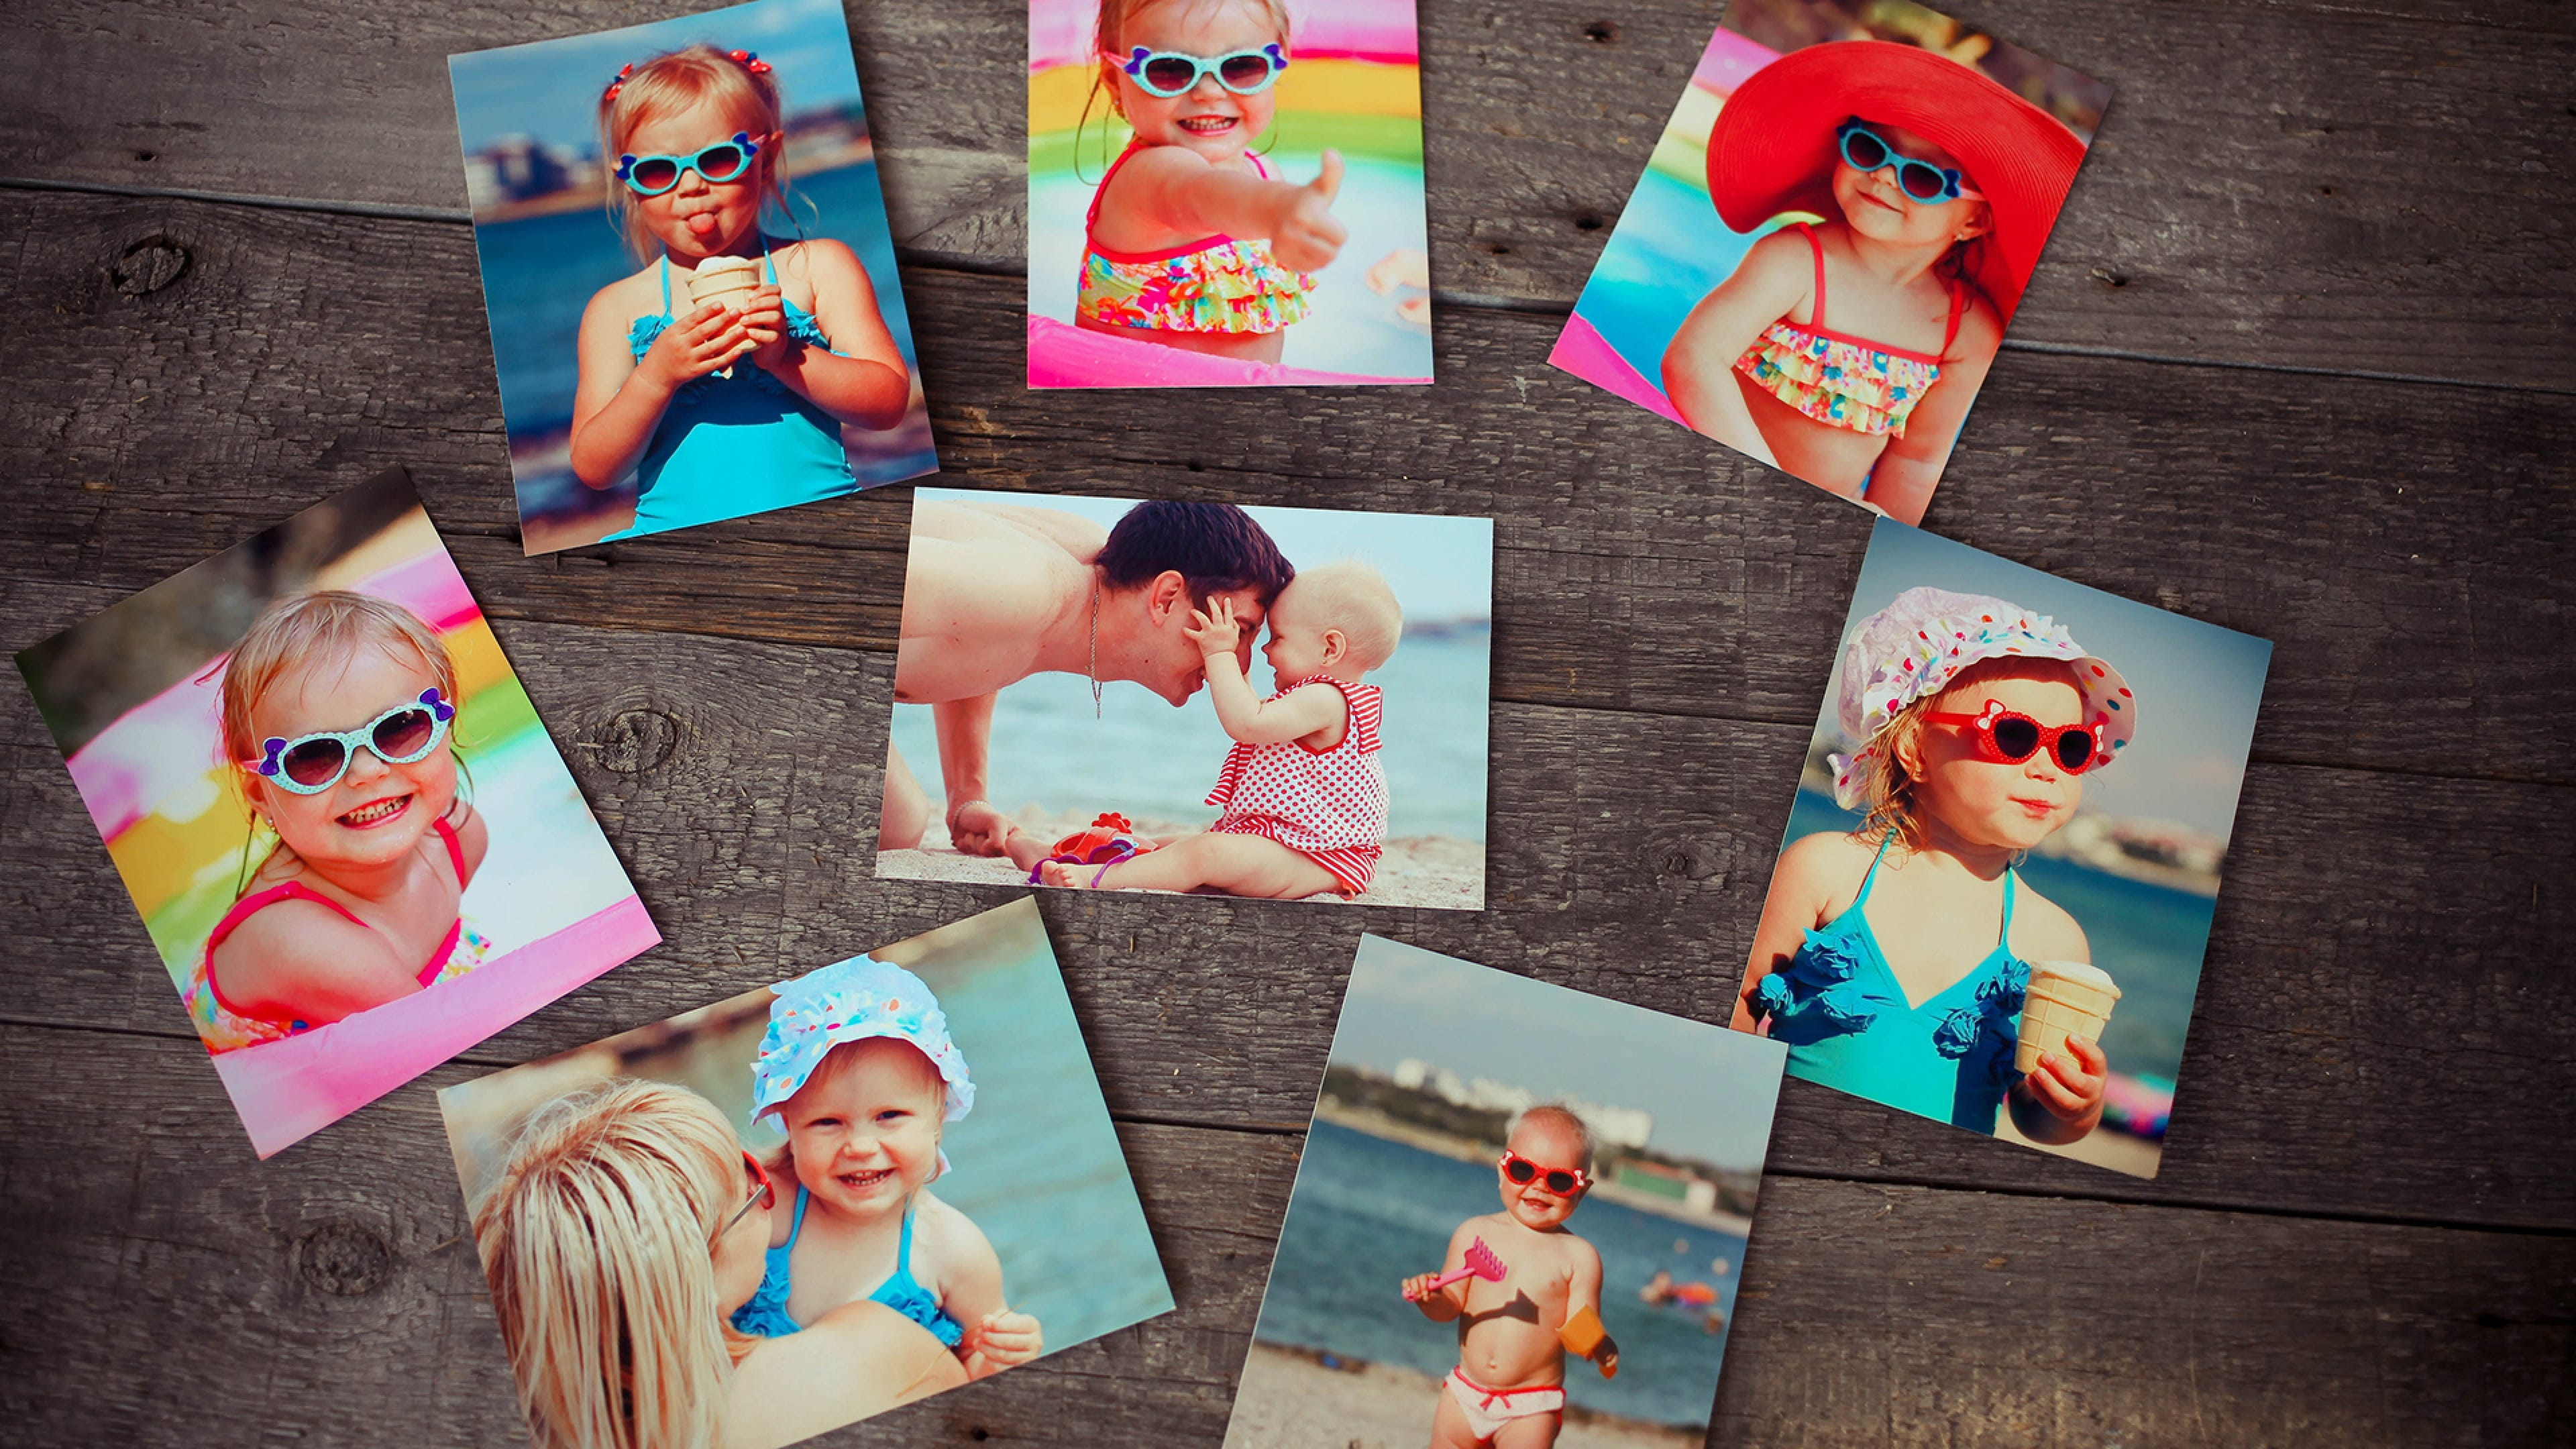 The Best Mini Photo Printers For Printing Photos On The Go